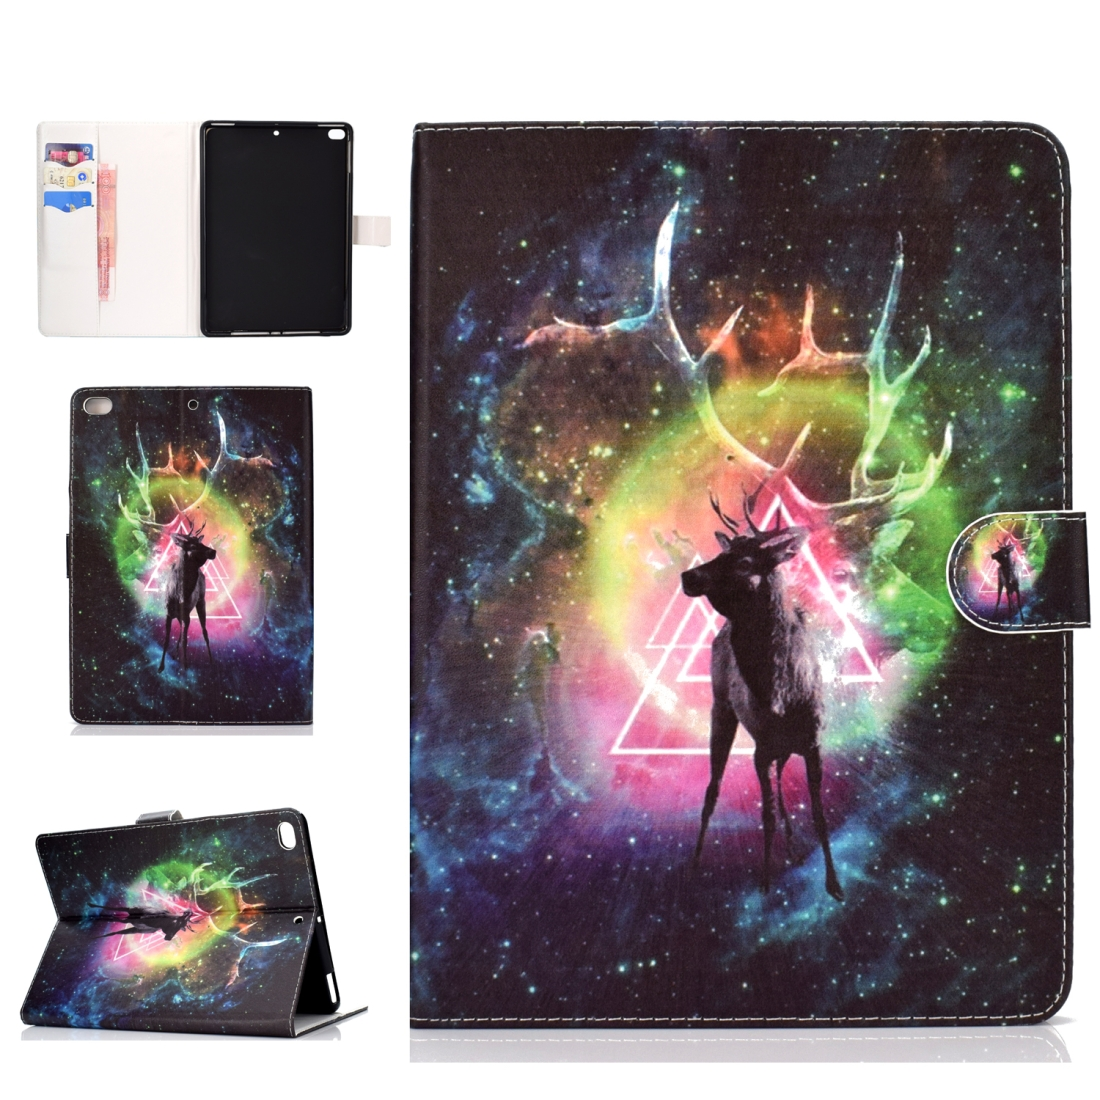 iPad 5th Generation Case Fits iPad 5,6,8, Stylish Leather Design & Auto Sleep Function (Nebula deer)